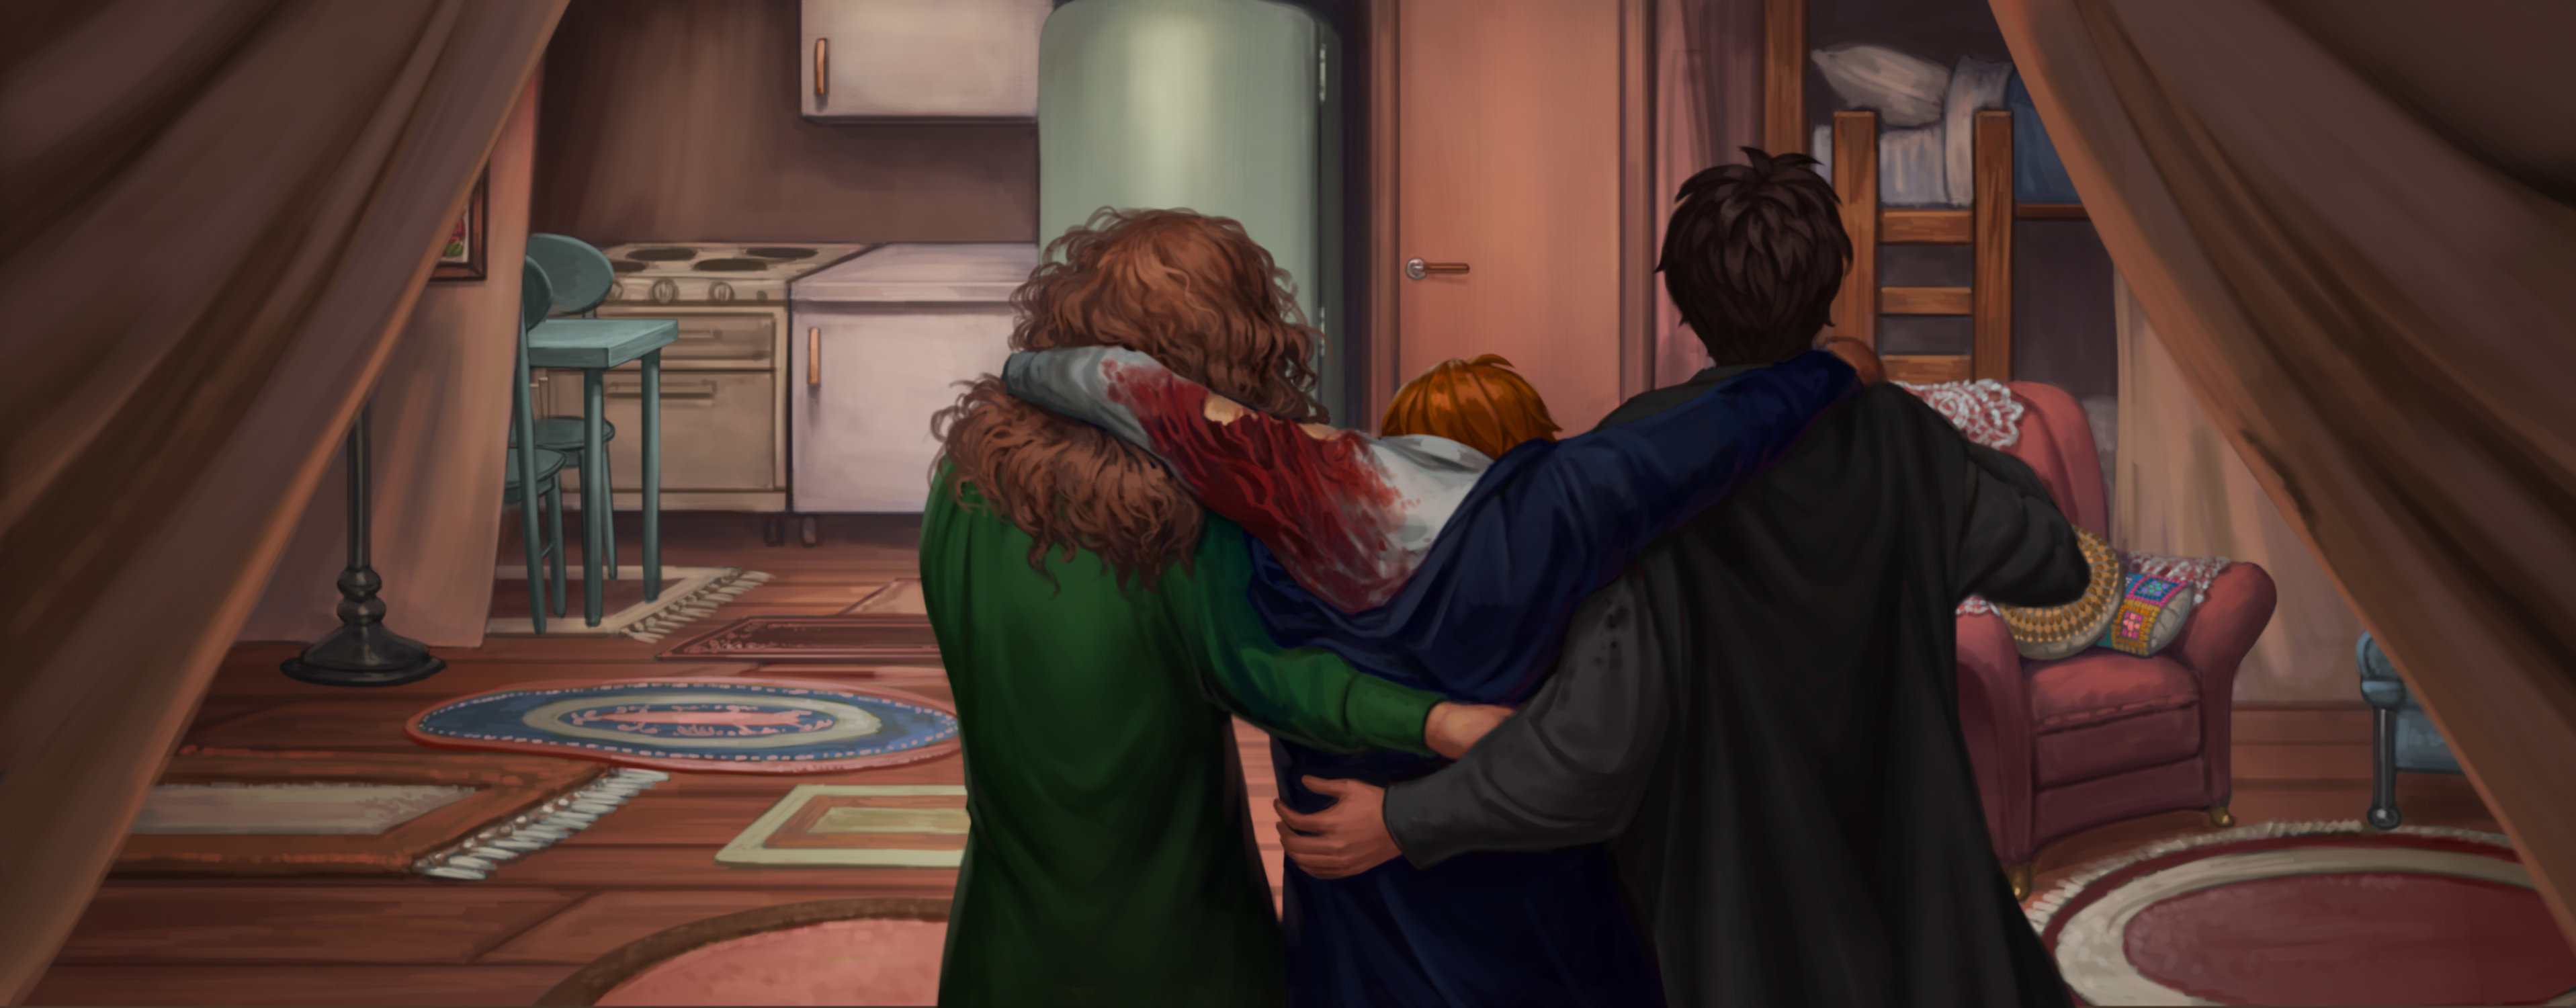 Harry and Hermione helping Ron after he has splinched himself.